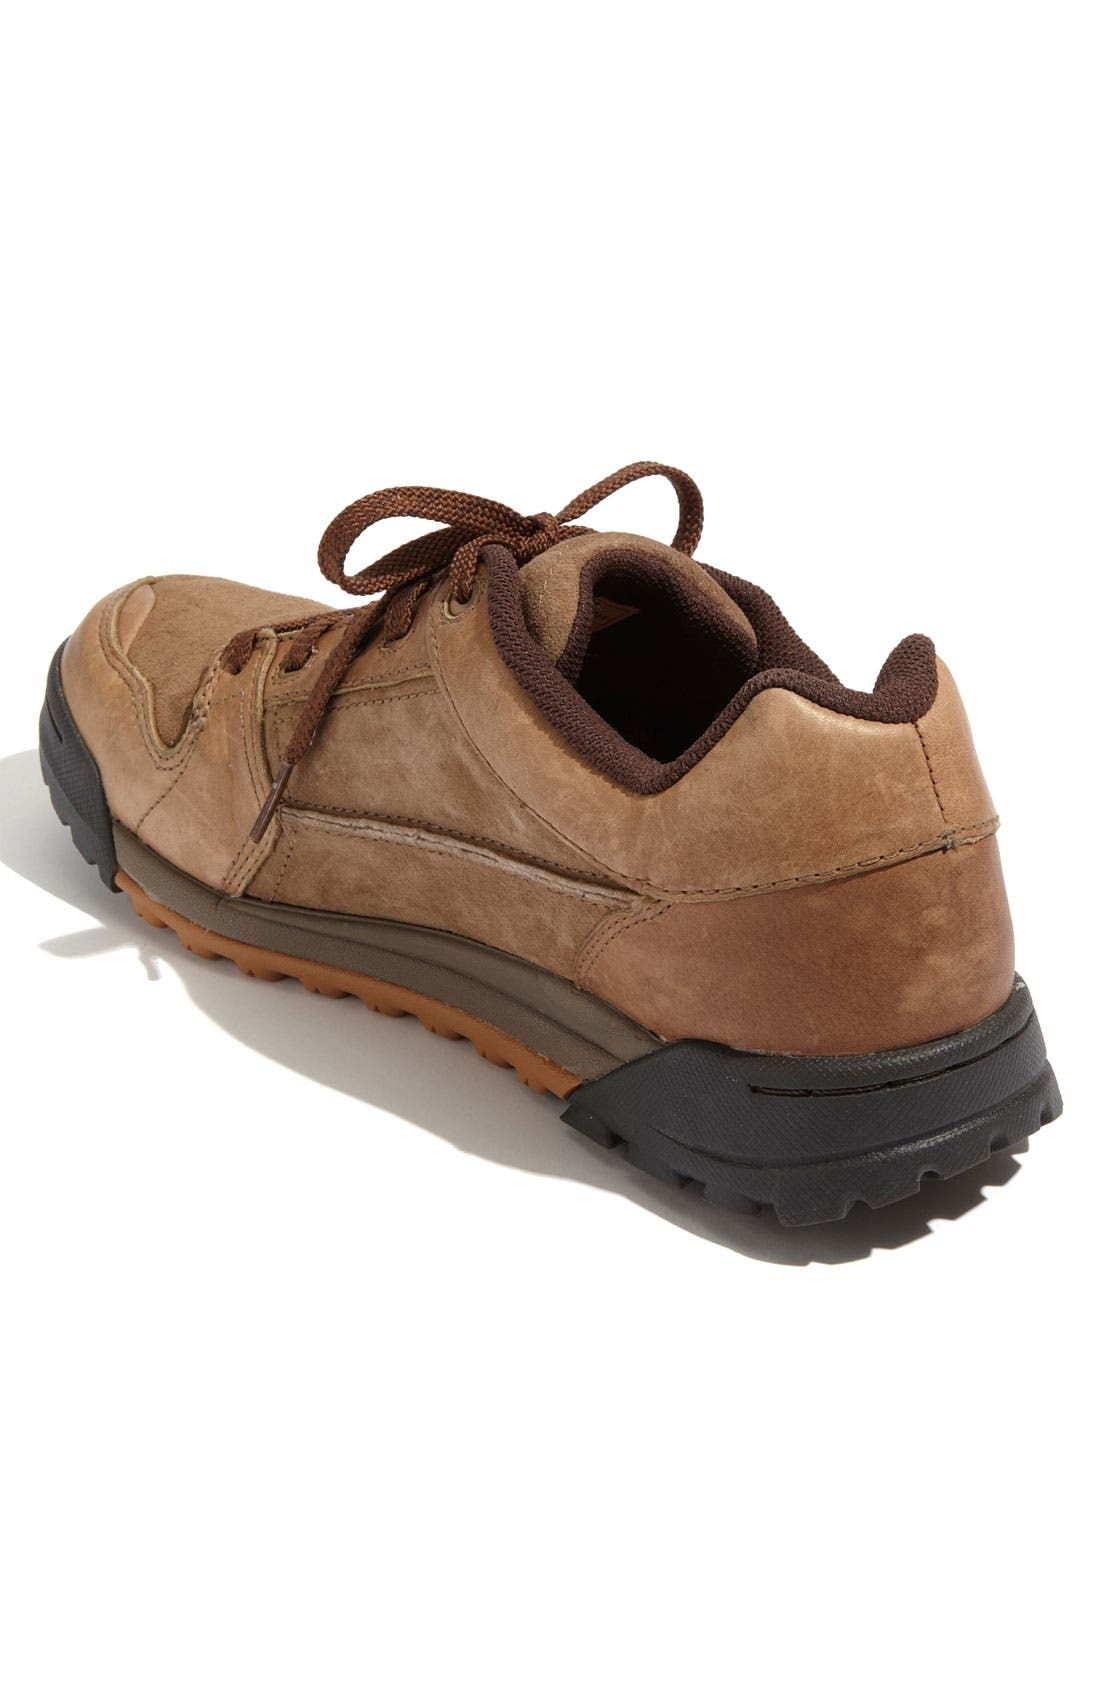 Alternate Image 2  - Patagonia 'Hog Tie' Multi Sport Shoe (Men)